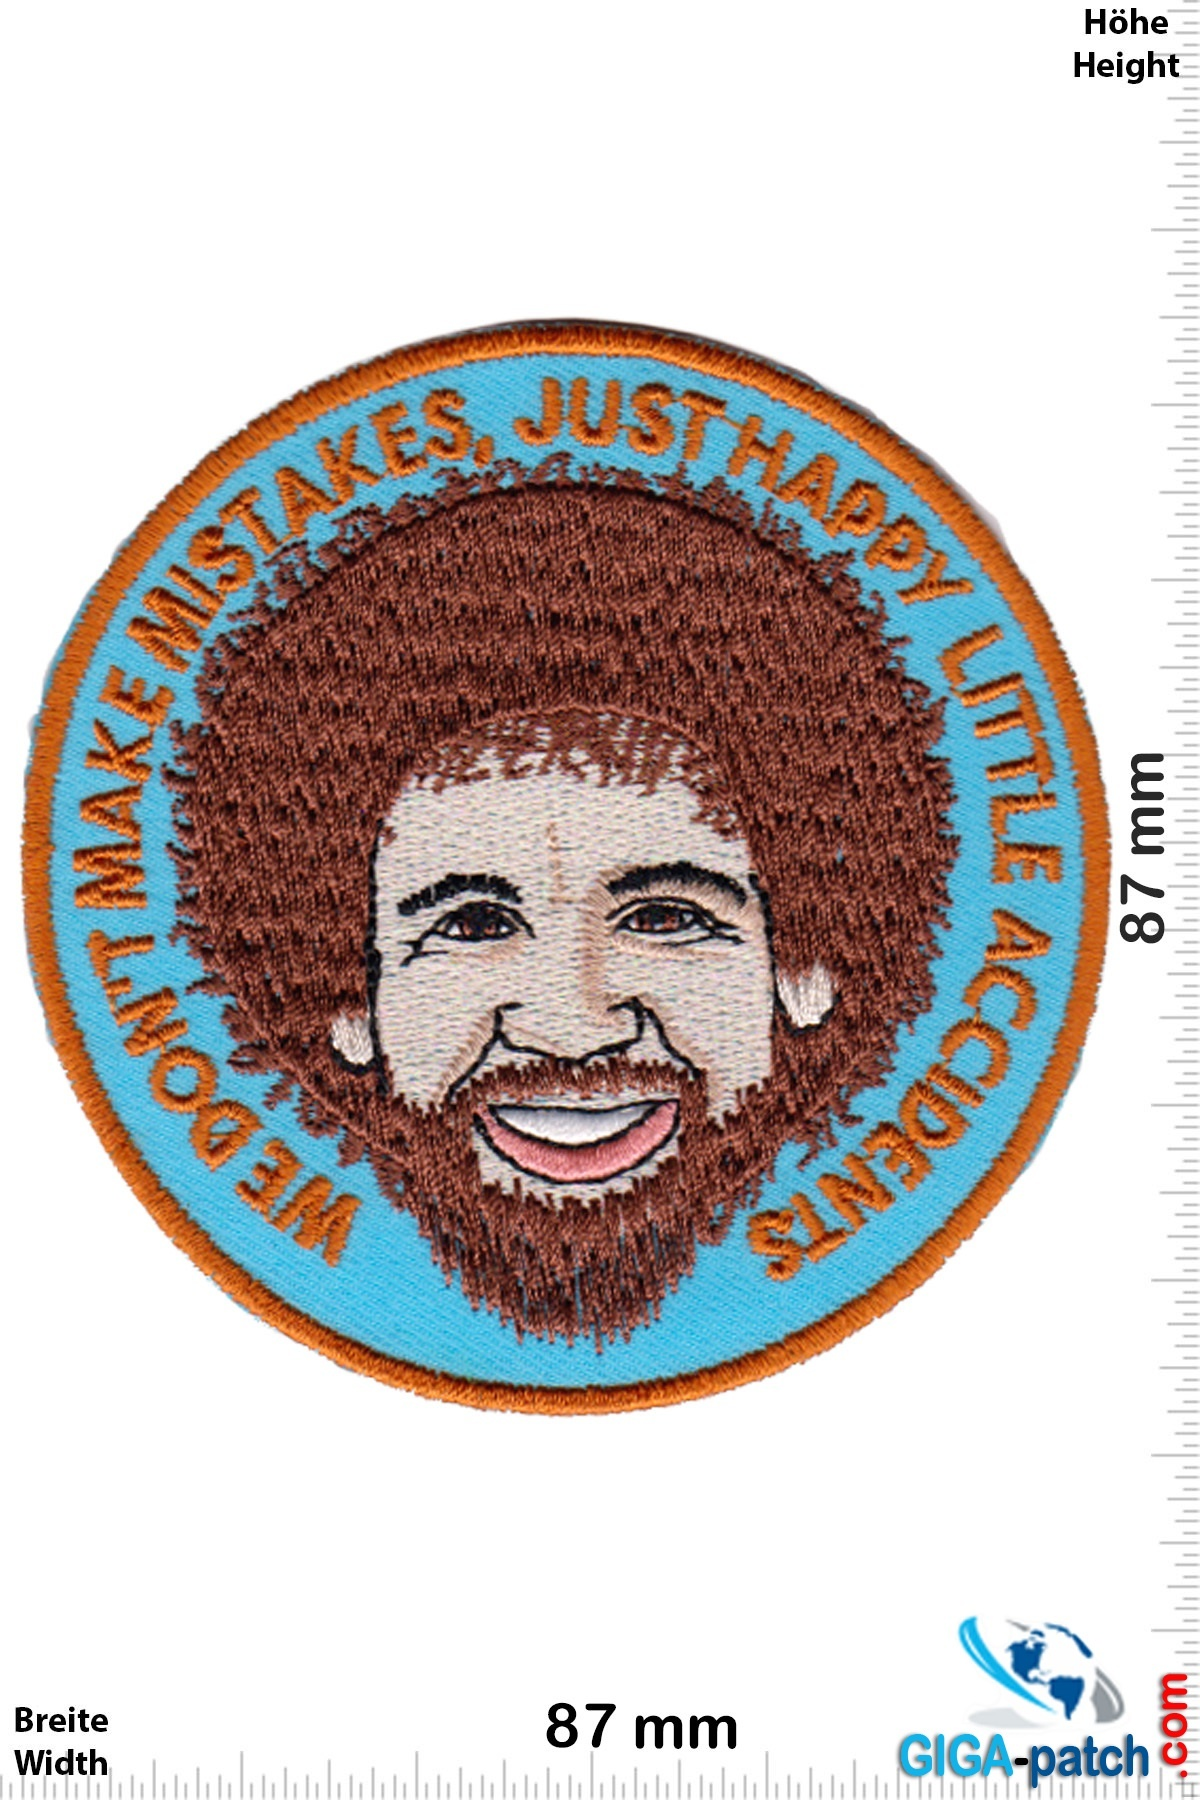 Bob Ross - We don't make mistakes, just happy little accidents